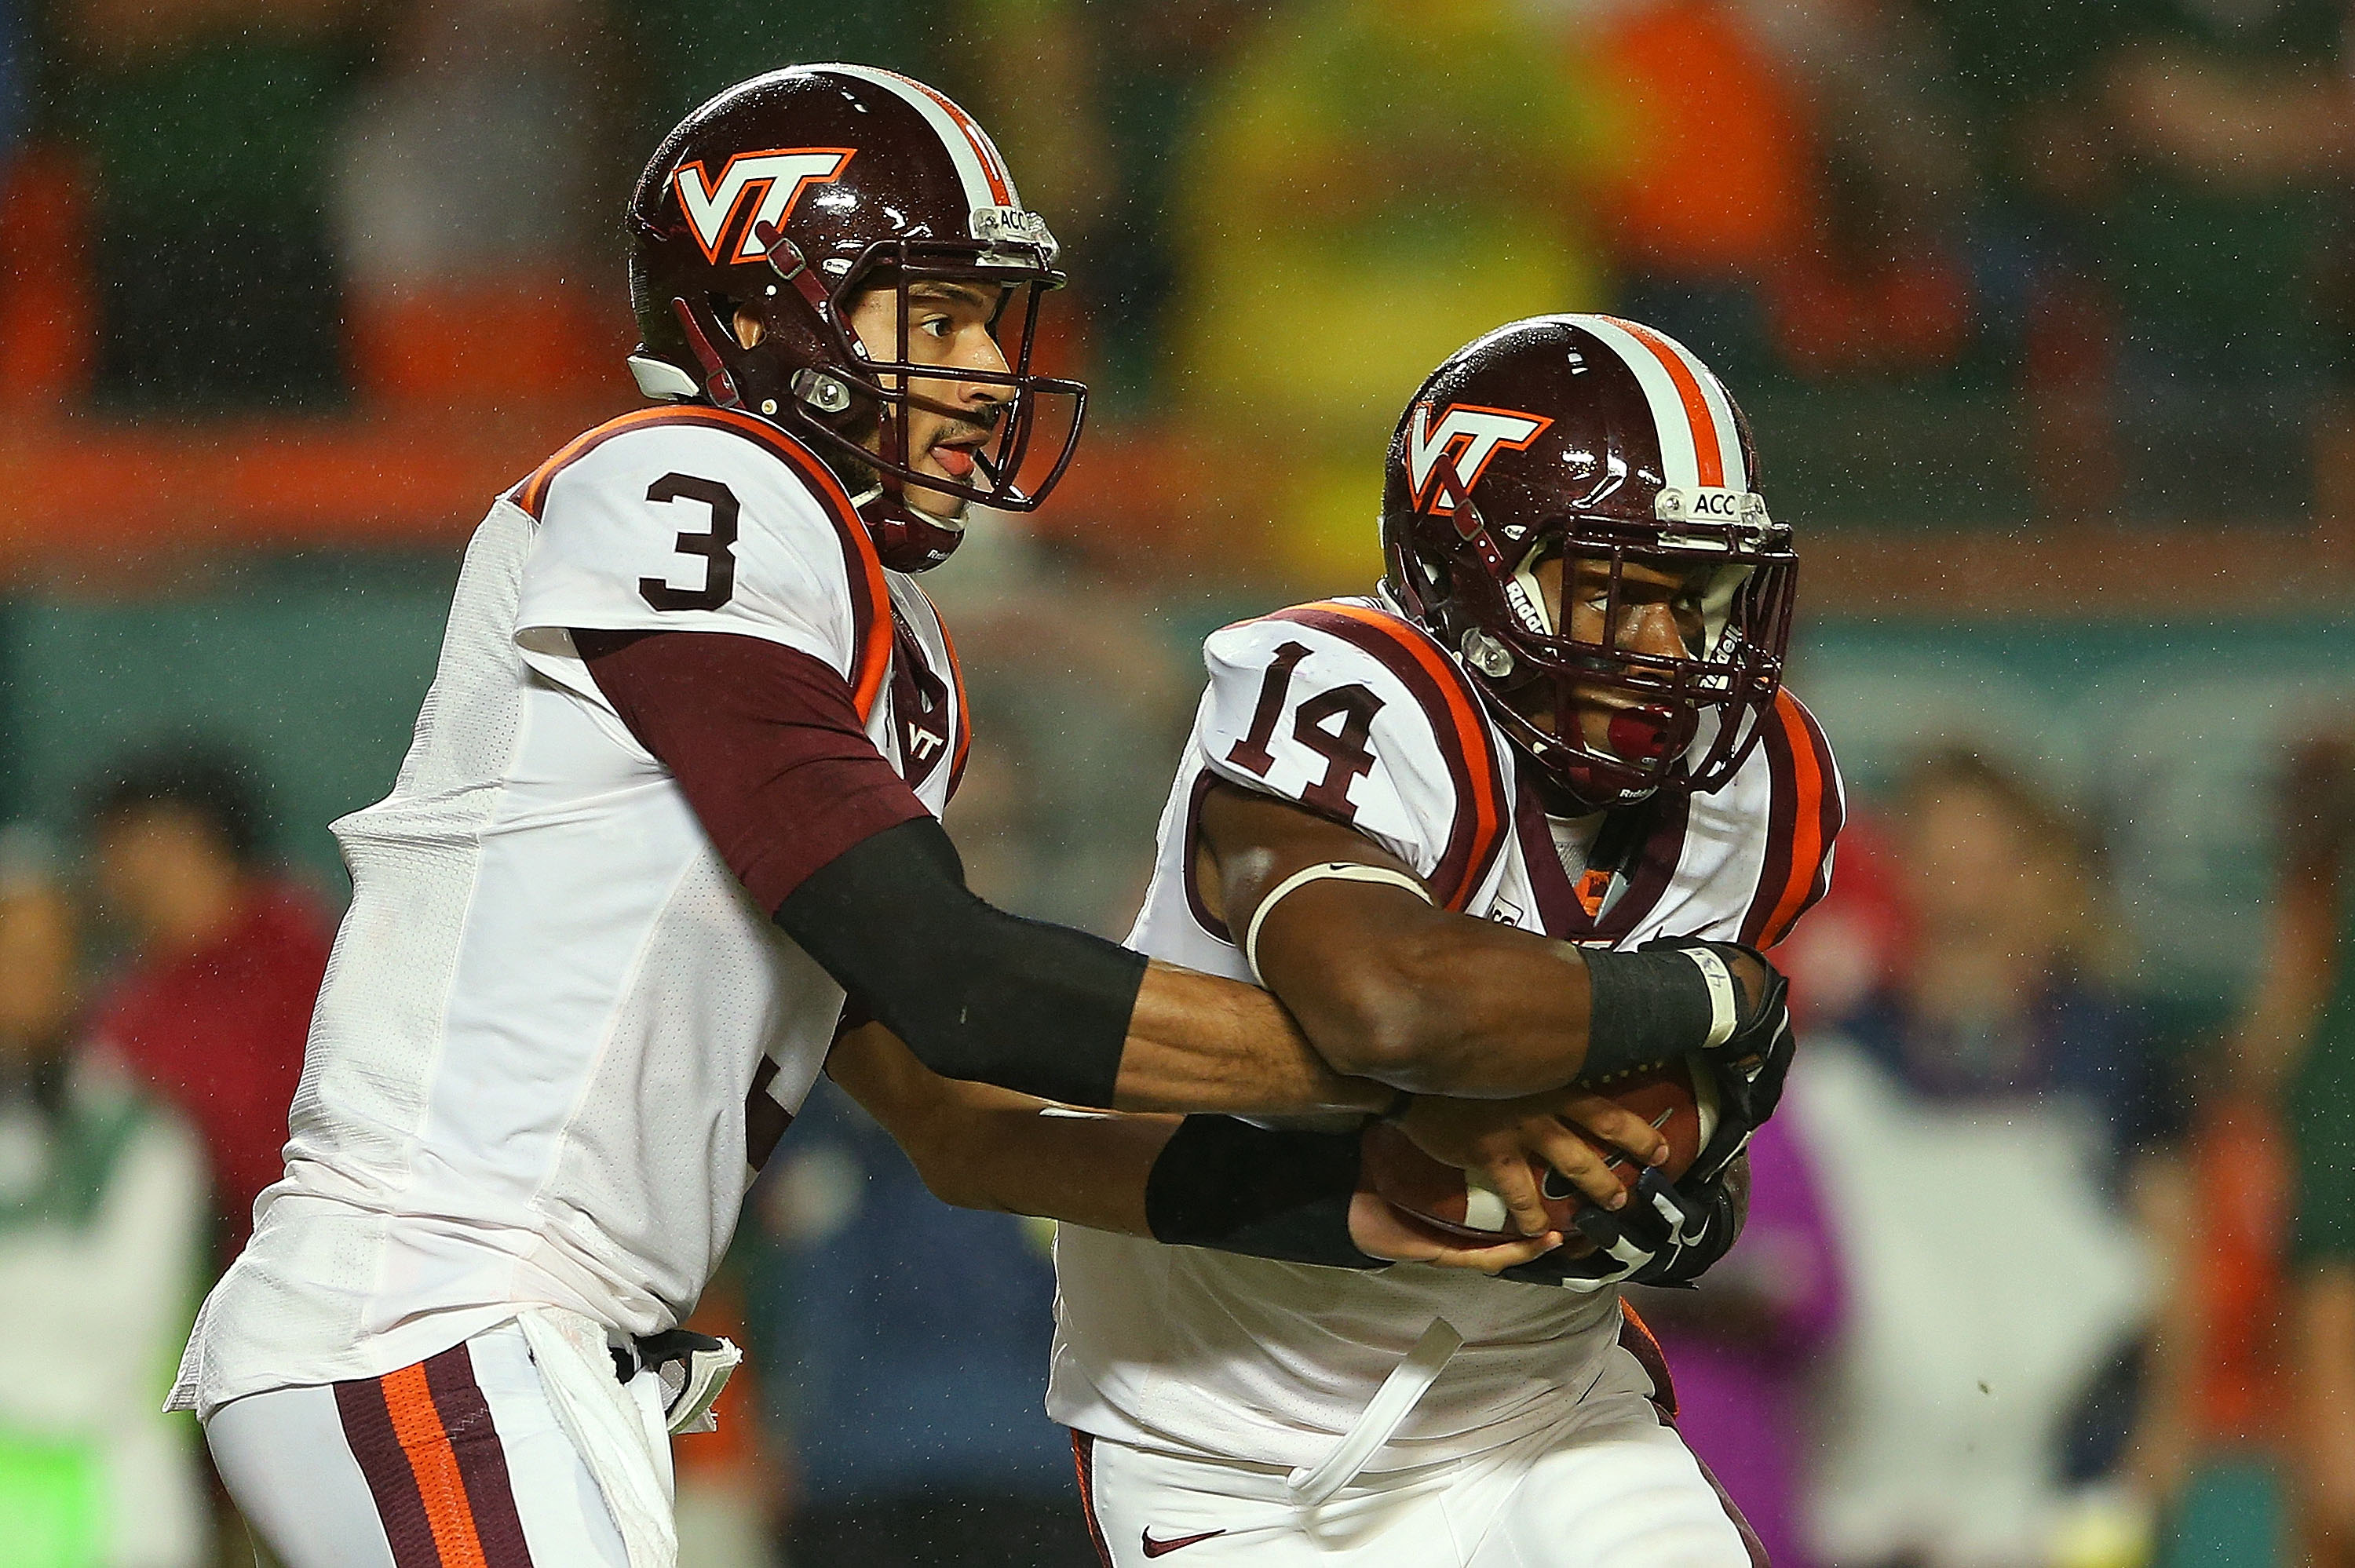 Virginia Tech running back Trey Edmunds will need to shoulder the load with quarterback Logan Thomas gone.